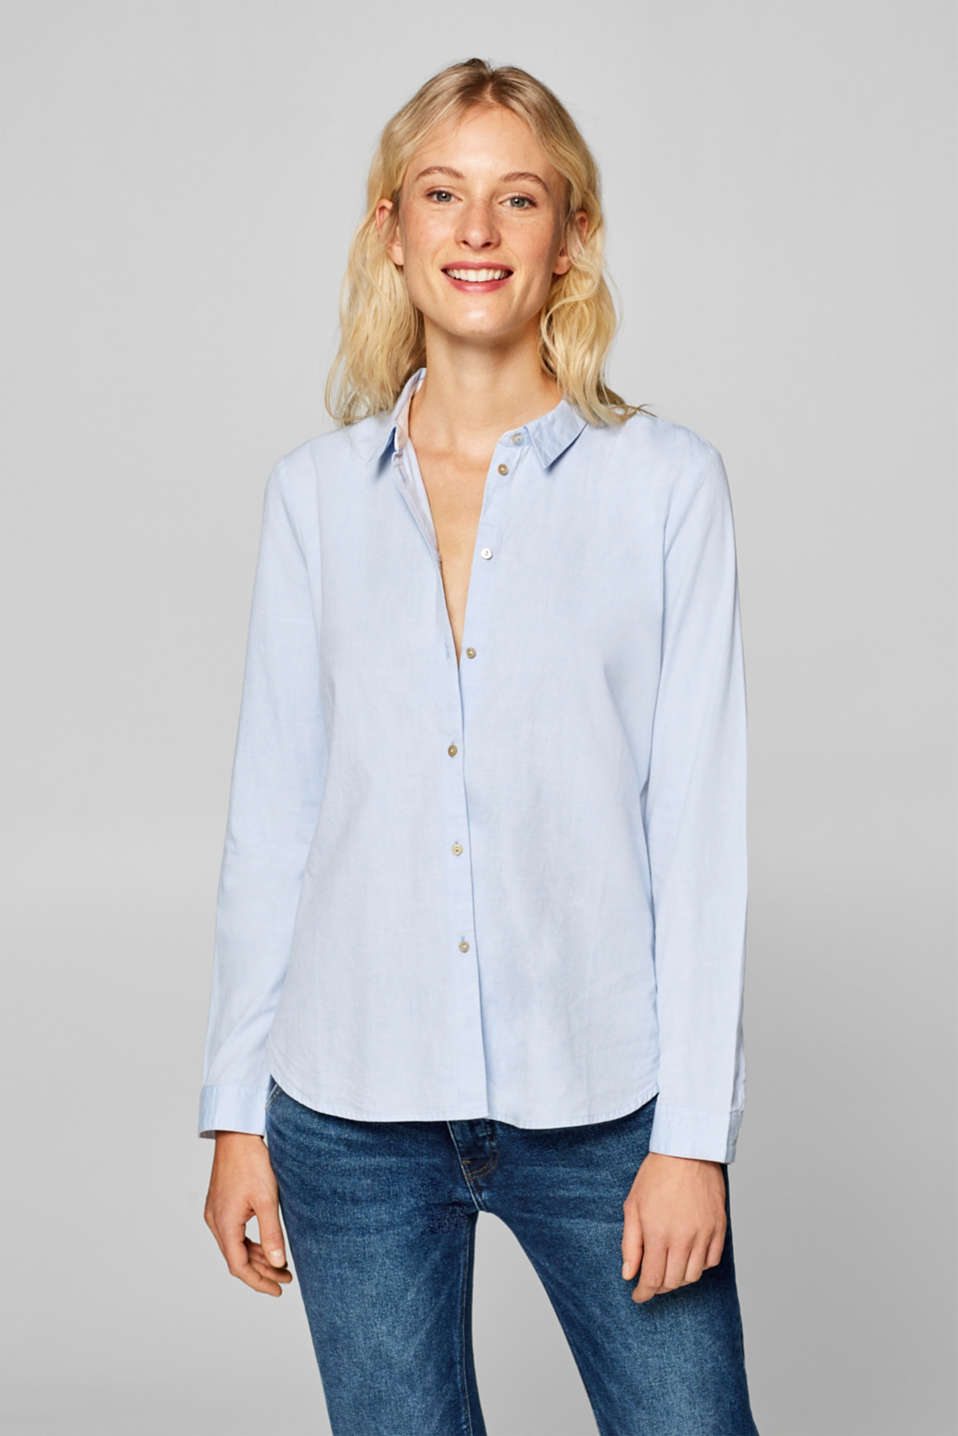 Esprit - Shirt blouse in chambray, 100% cotton